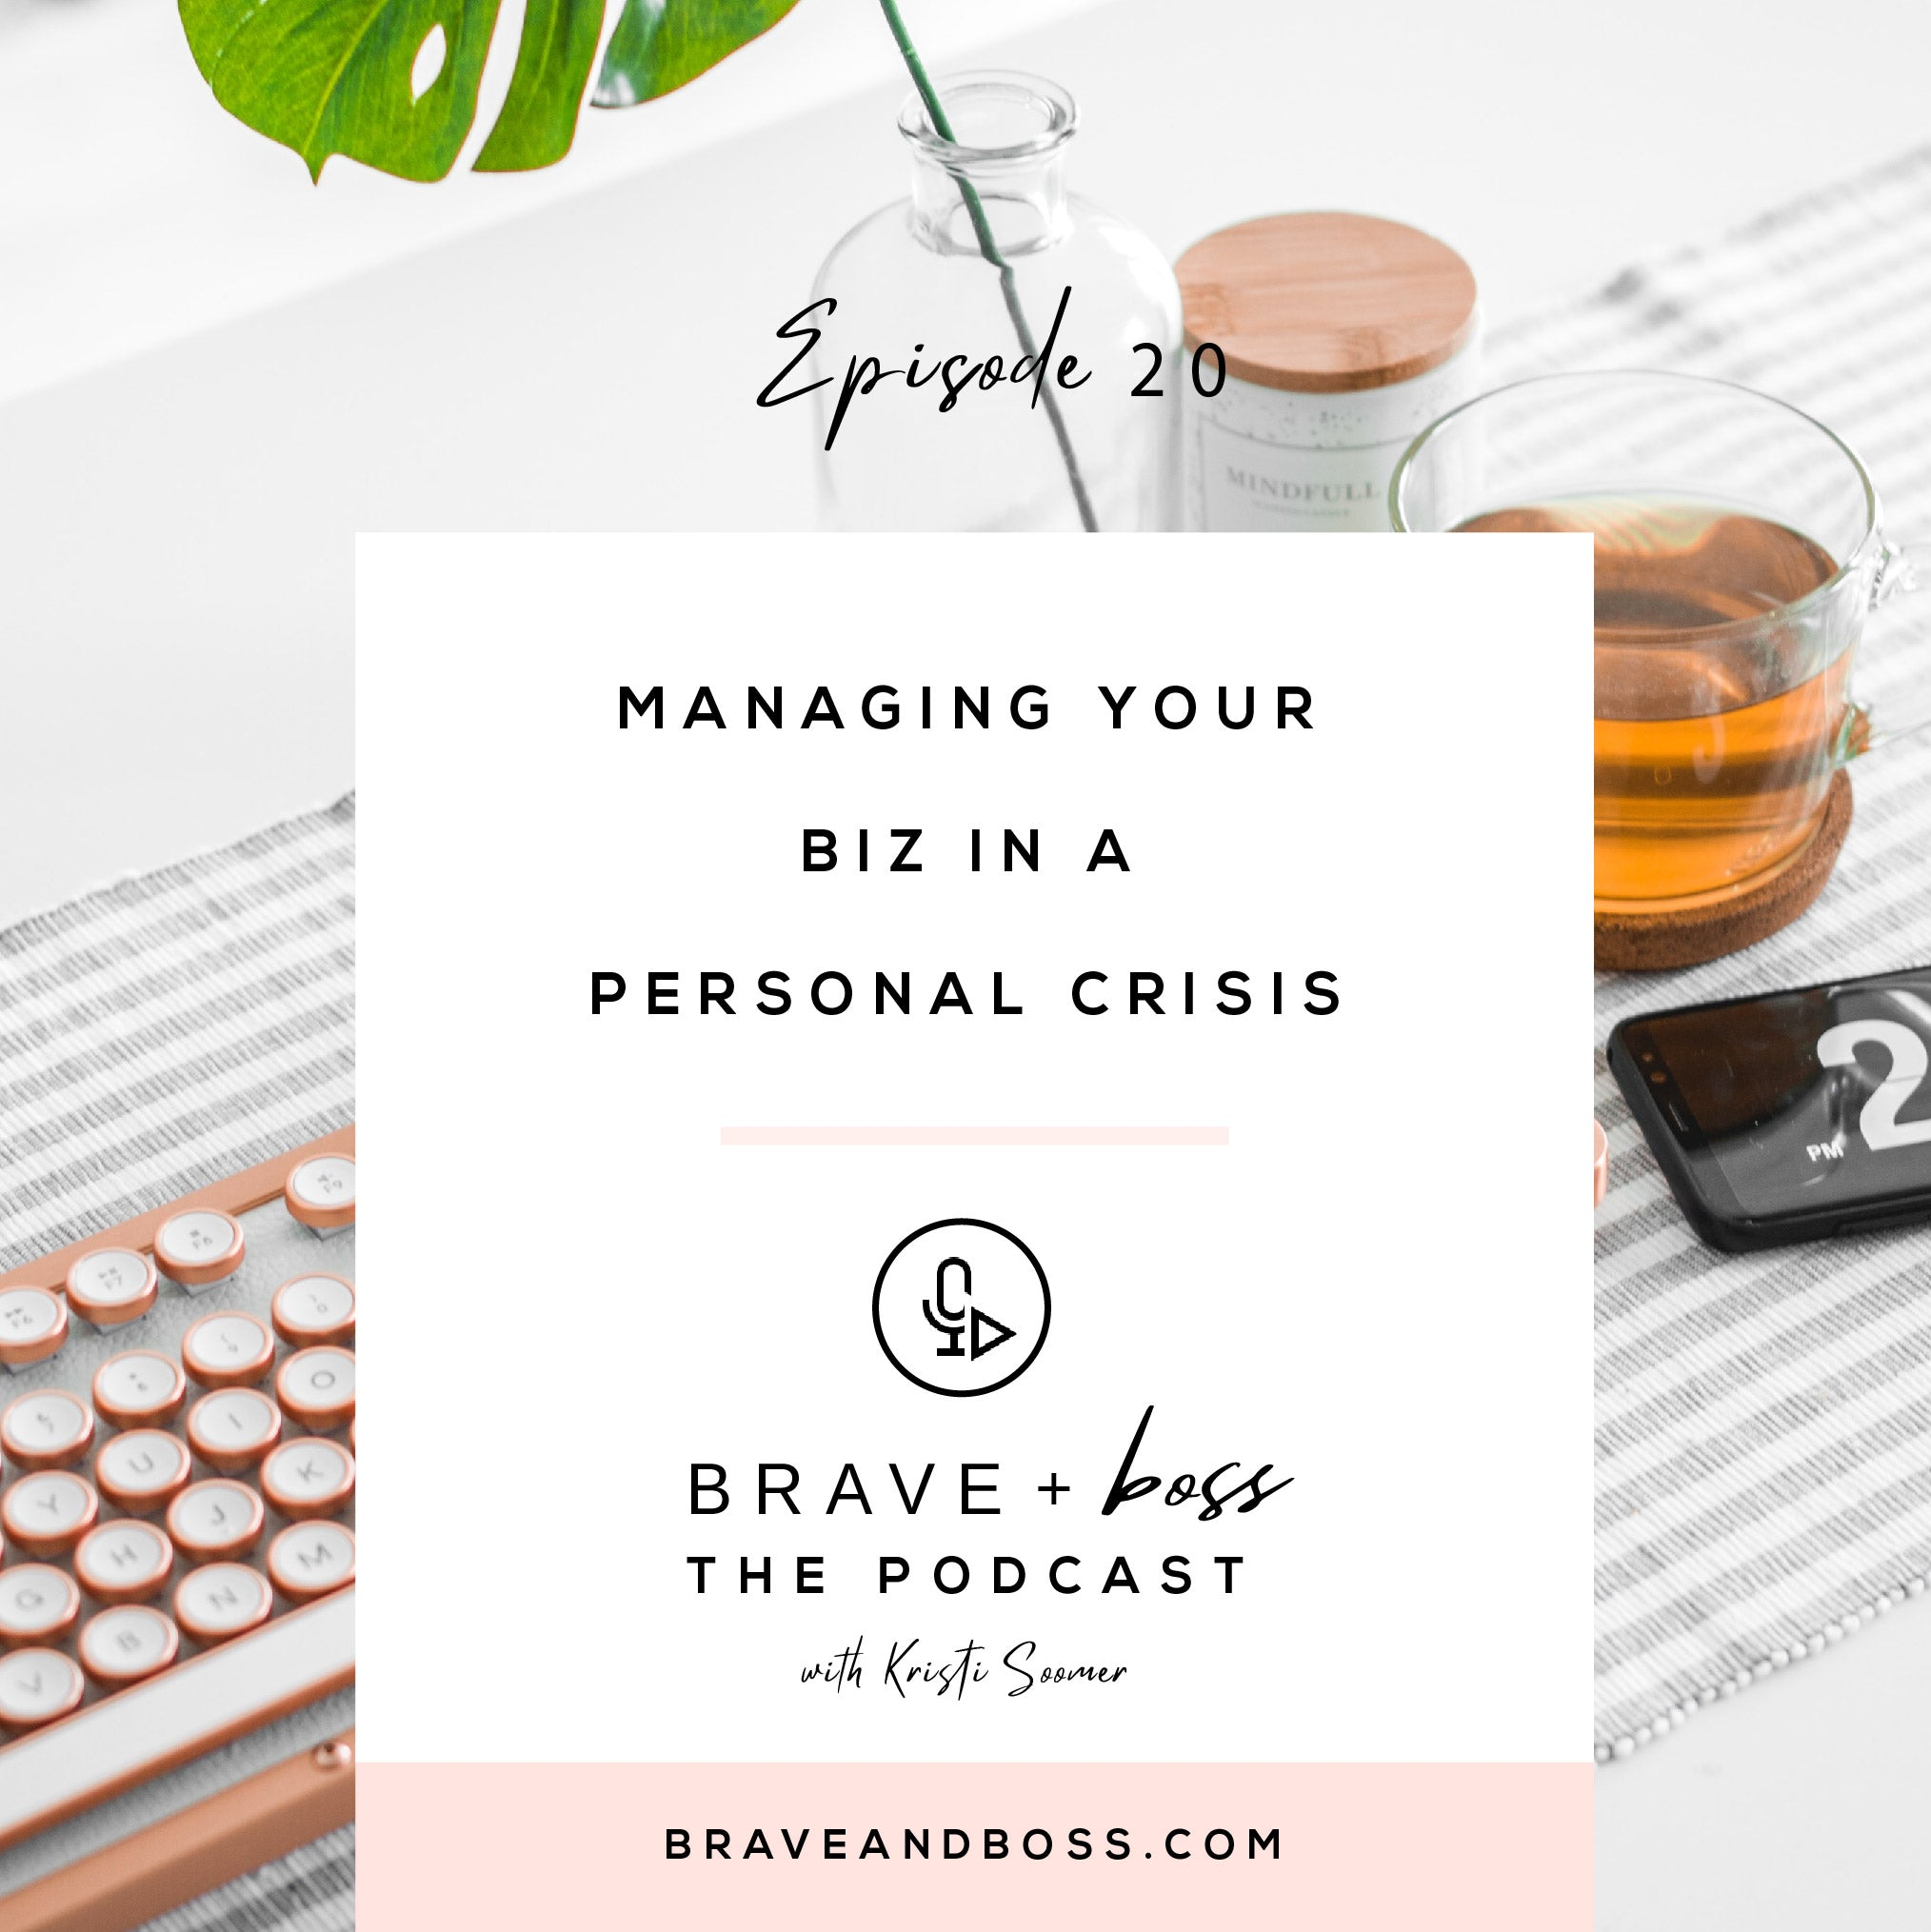 Managing your Biz in a Personal Crisis